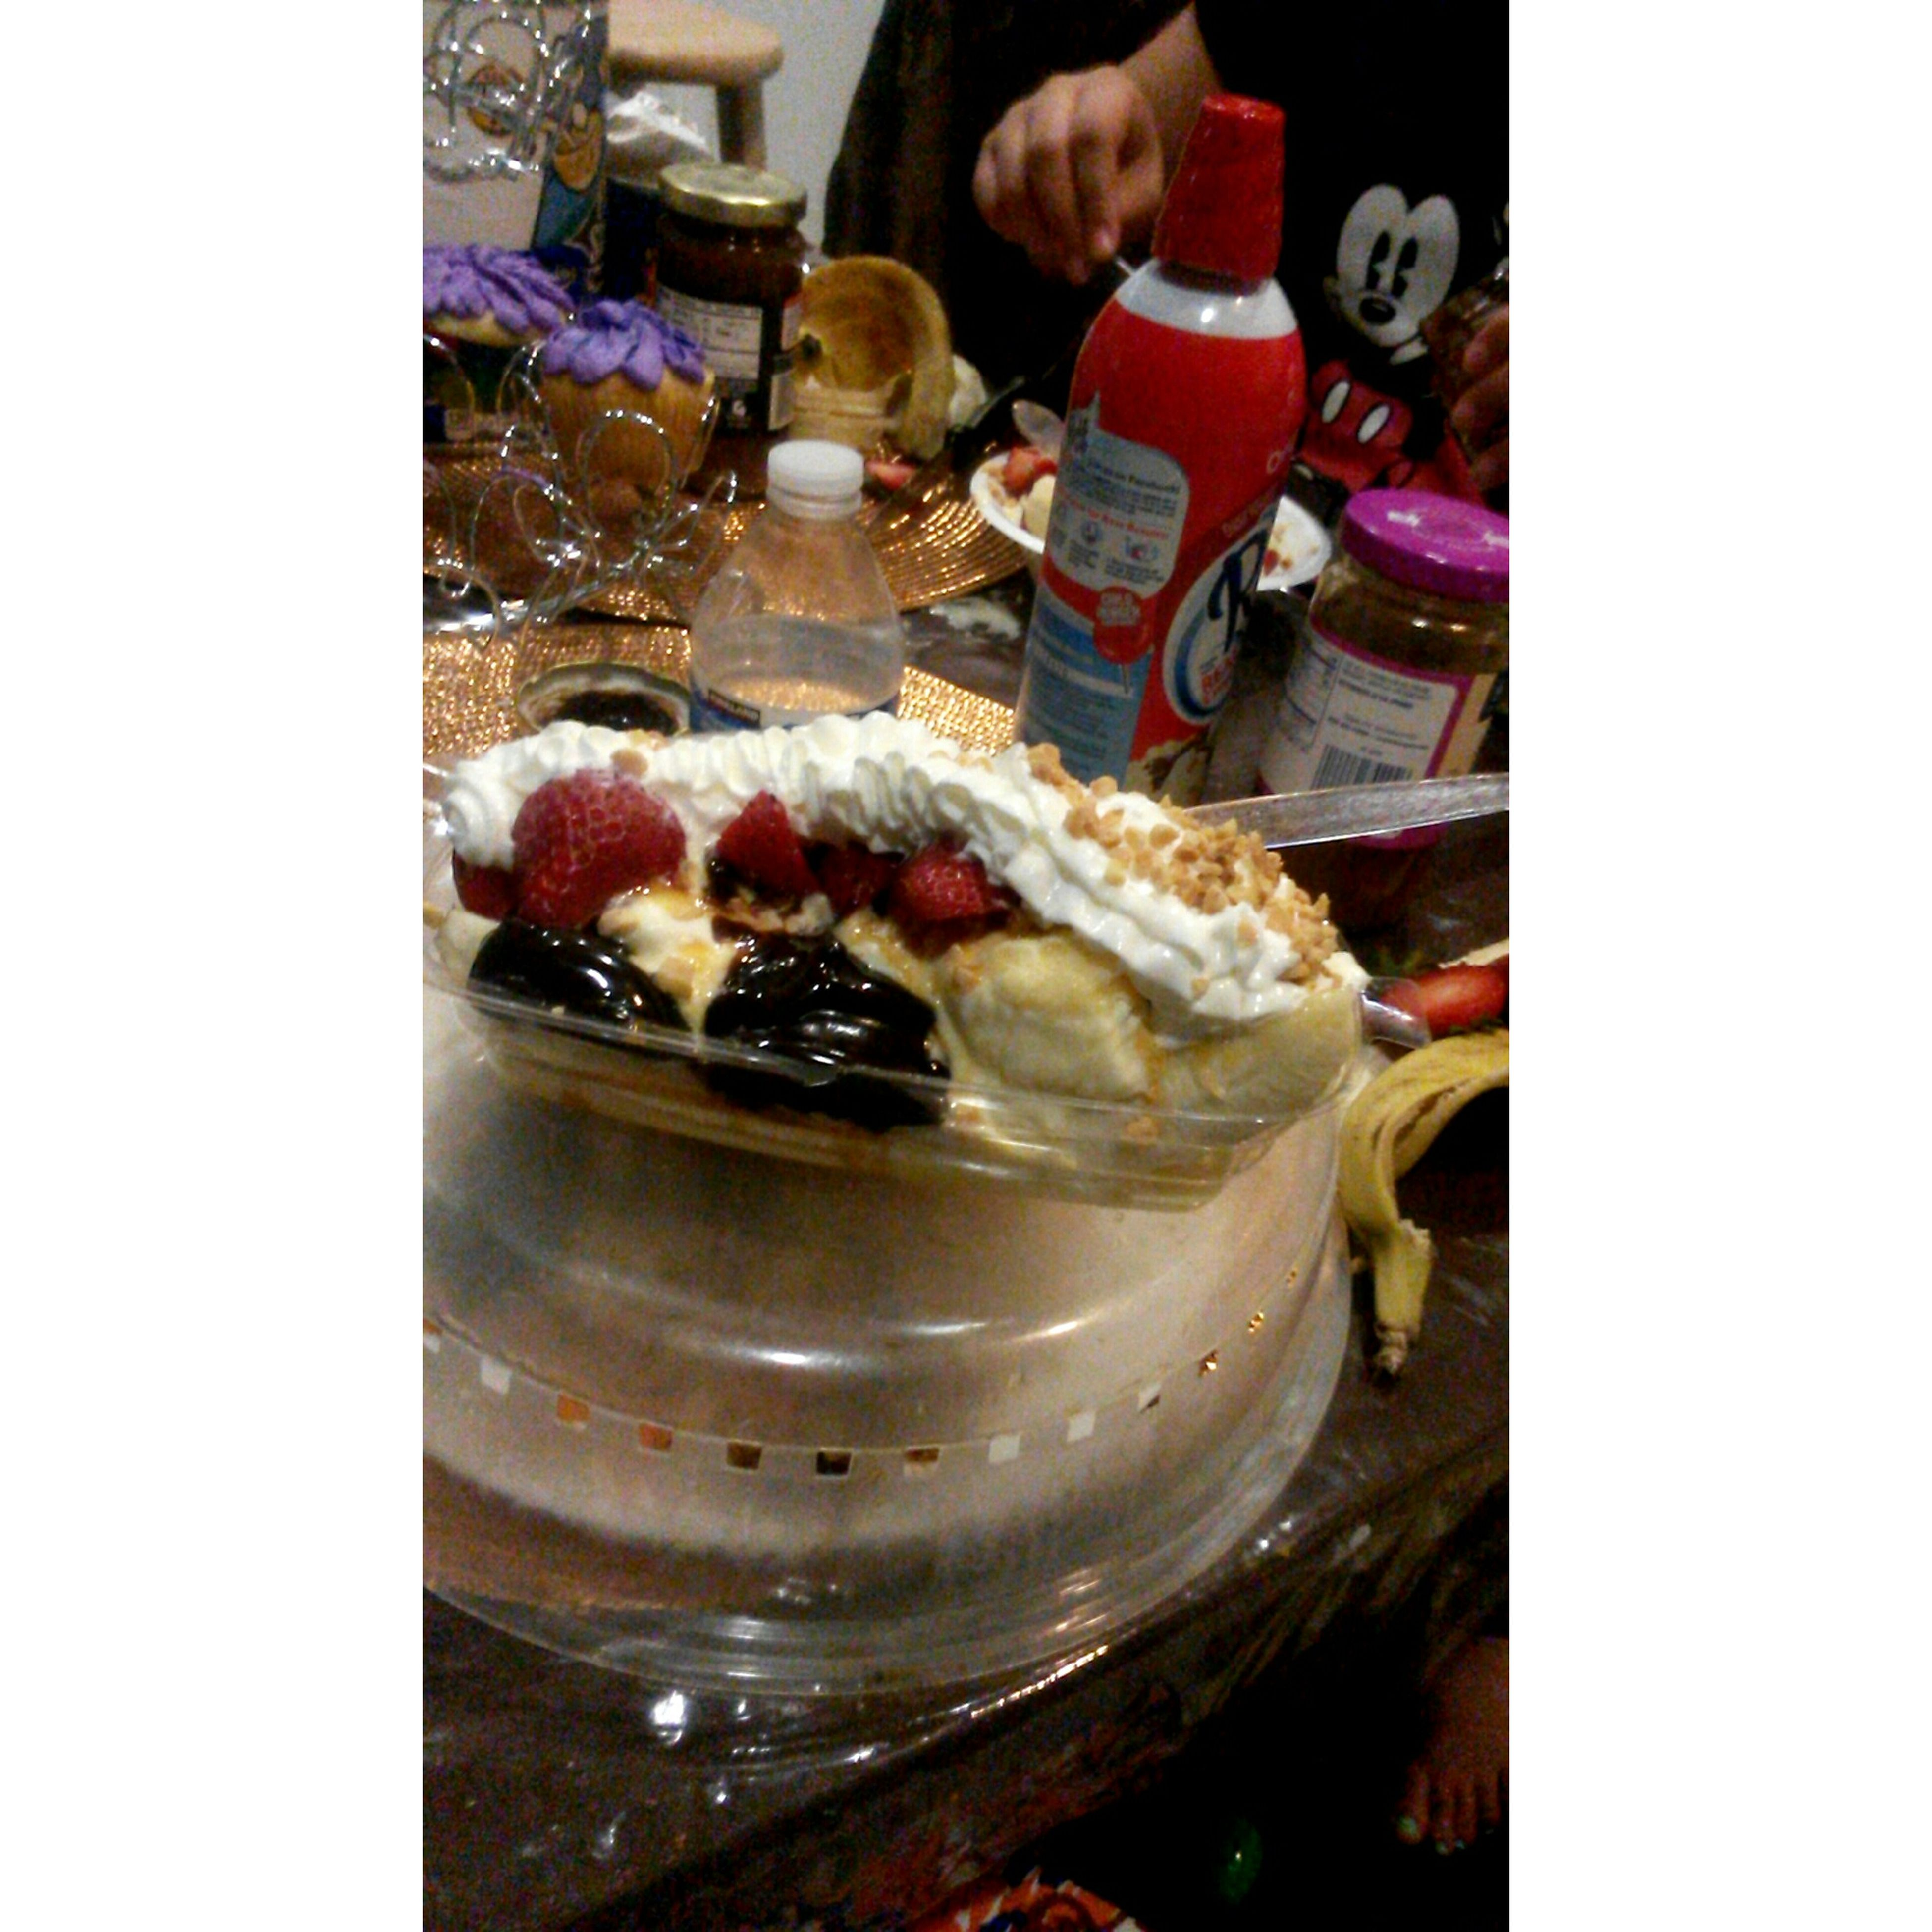 mmmm can i have another banana split ahaha Last Night I'm So Getting Diabetes When I'm Old ahaha I'm done xD